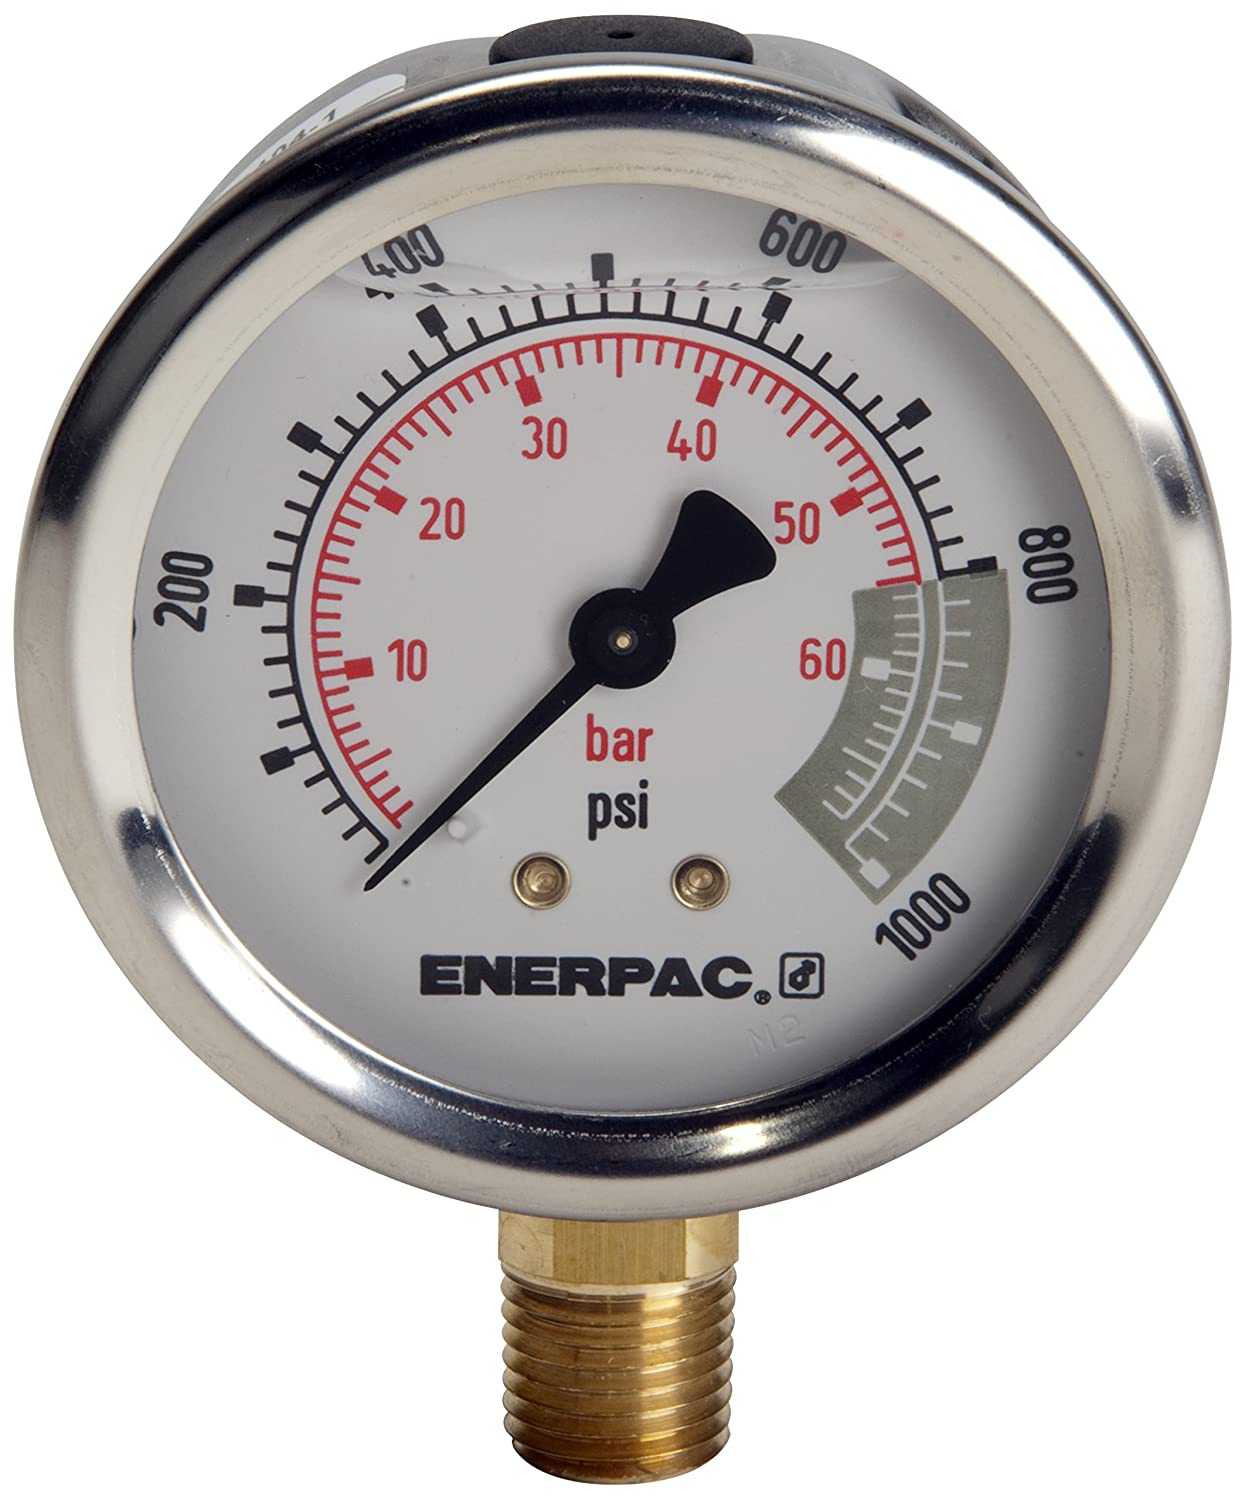 Enerpac G2536L Hydraulic Pressure Gauge, Lower Mount, 2.5' Face, 1/4' NPTF, 0 to 15,000 PSI, 0 to 1,000 bar, Silver 2.5 Face 1/4 NPTF